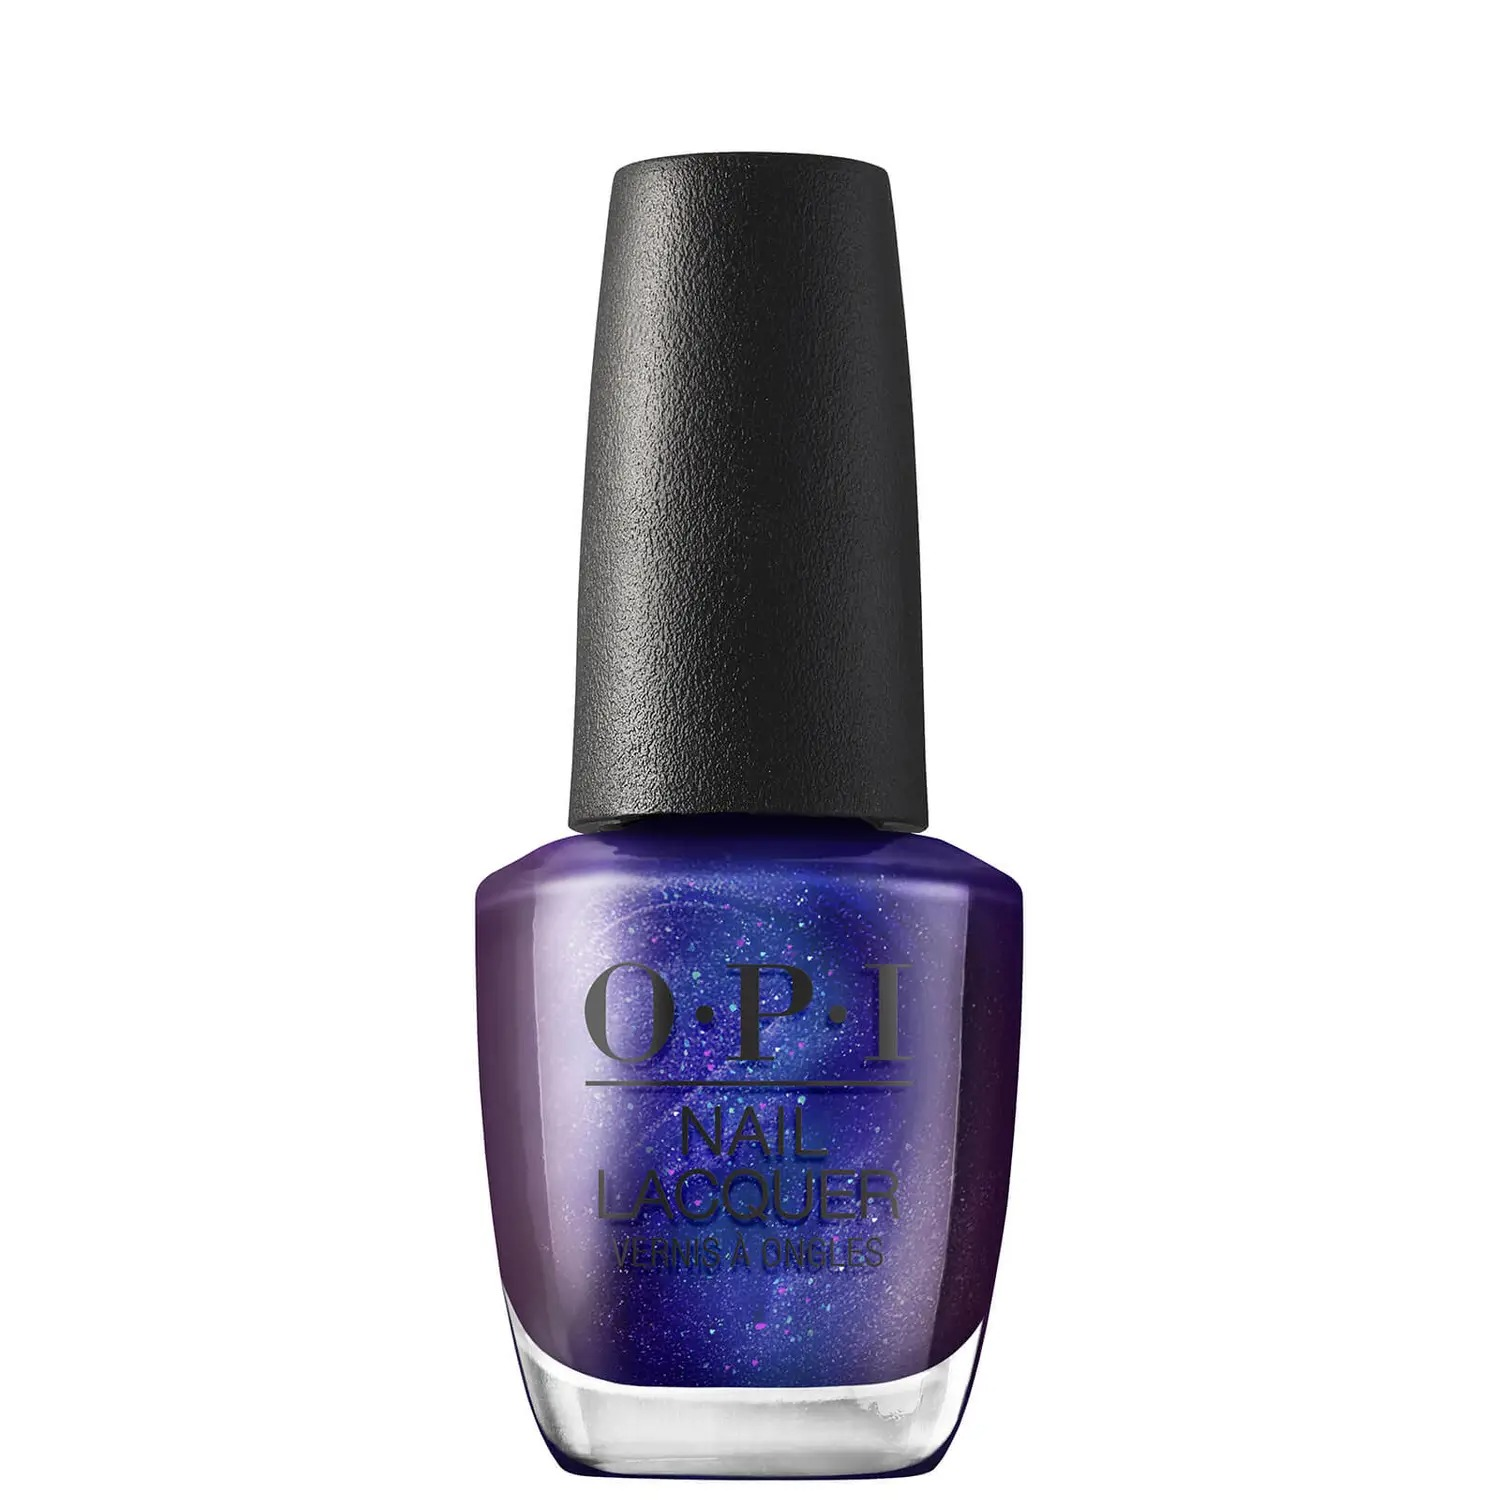 OPI Fall 2021 Downtown LA Collection  Abstract After Dark